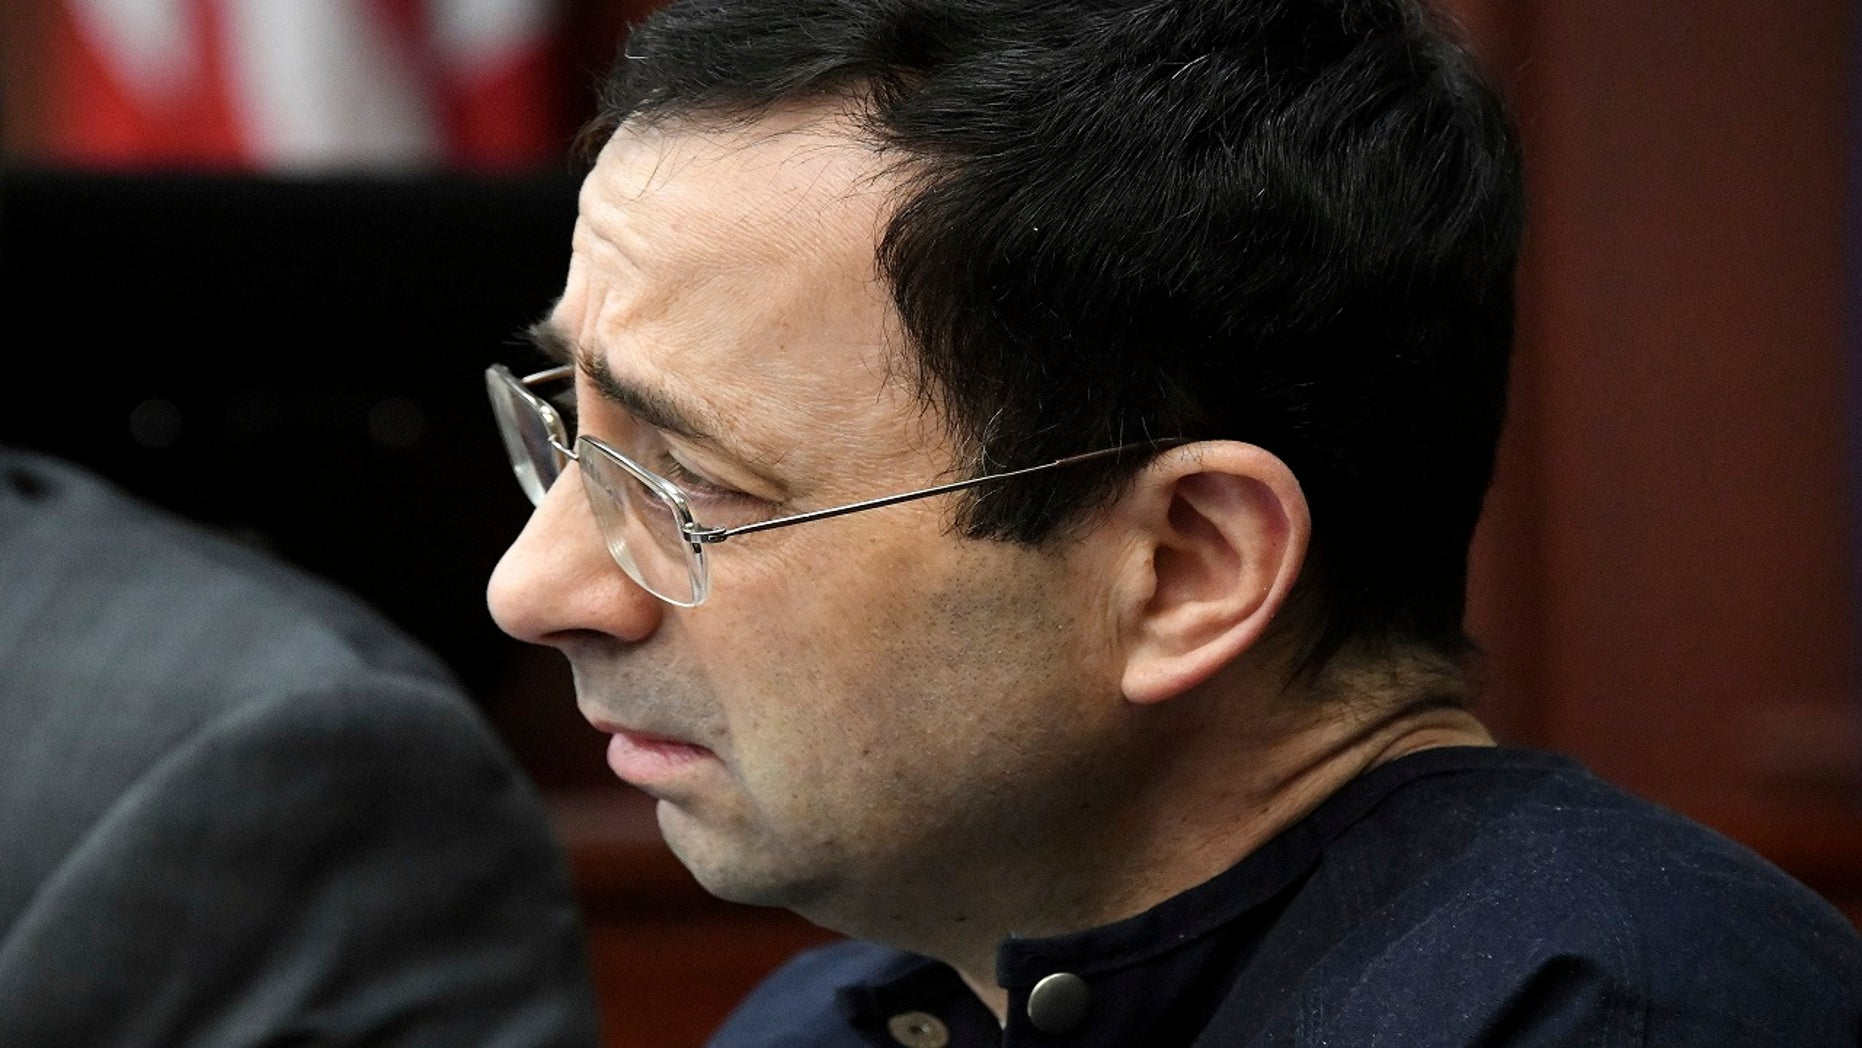 Larry Nassar listens to Jordyn Wieber's impact statement in the court of Judge Rosemarie Aquilina, Jan. 19, 2018, in Lansing, Mich., during the fourth day of sentencing for the former sports doctor, who pled guilty to multiple counts of sexual assault.